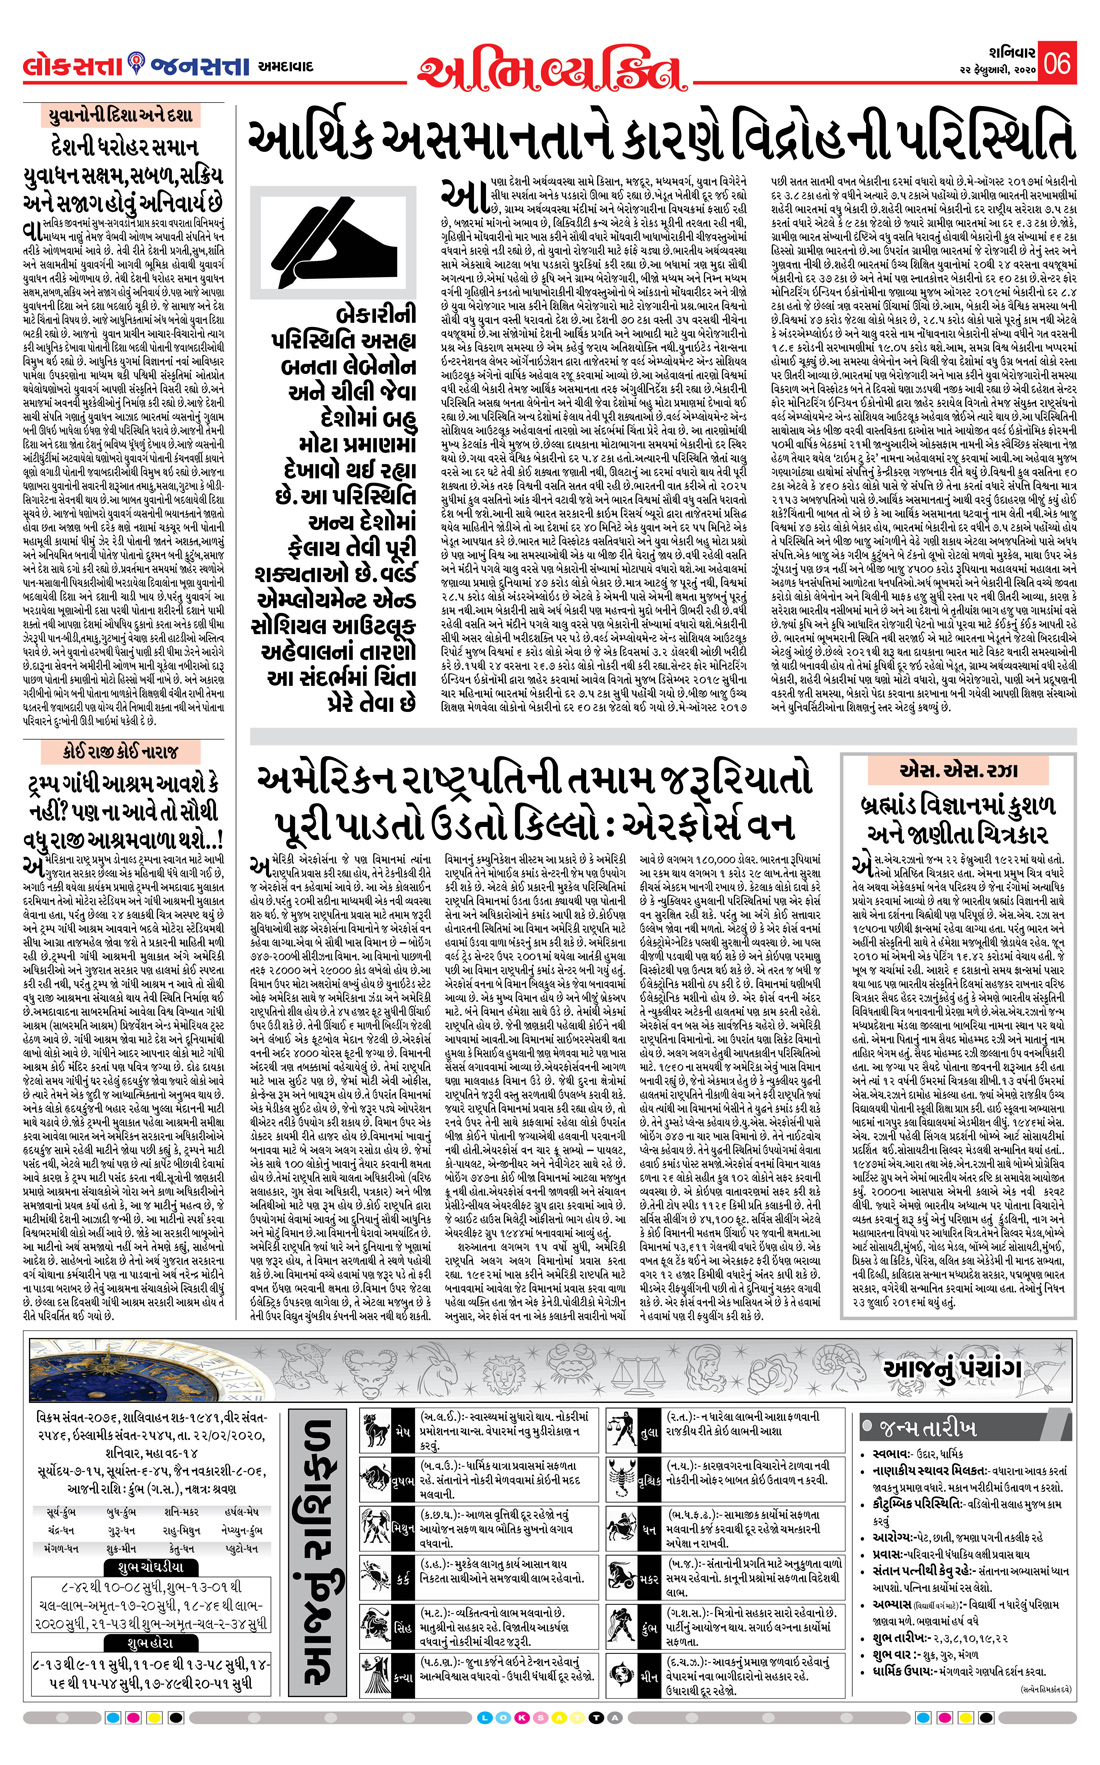 Loksatta Jansatta News Papaer E-paper dated 2020-02-22 | Page 6